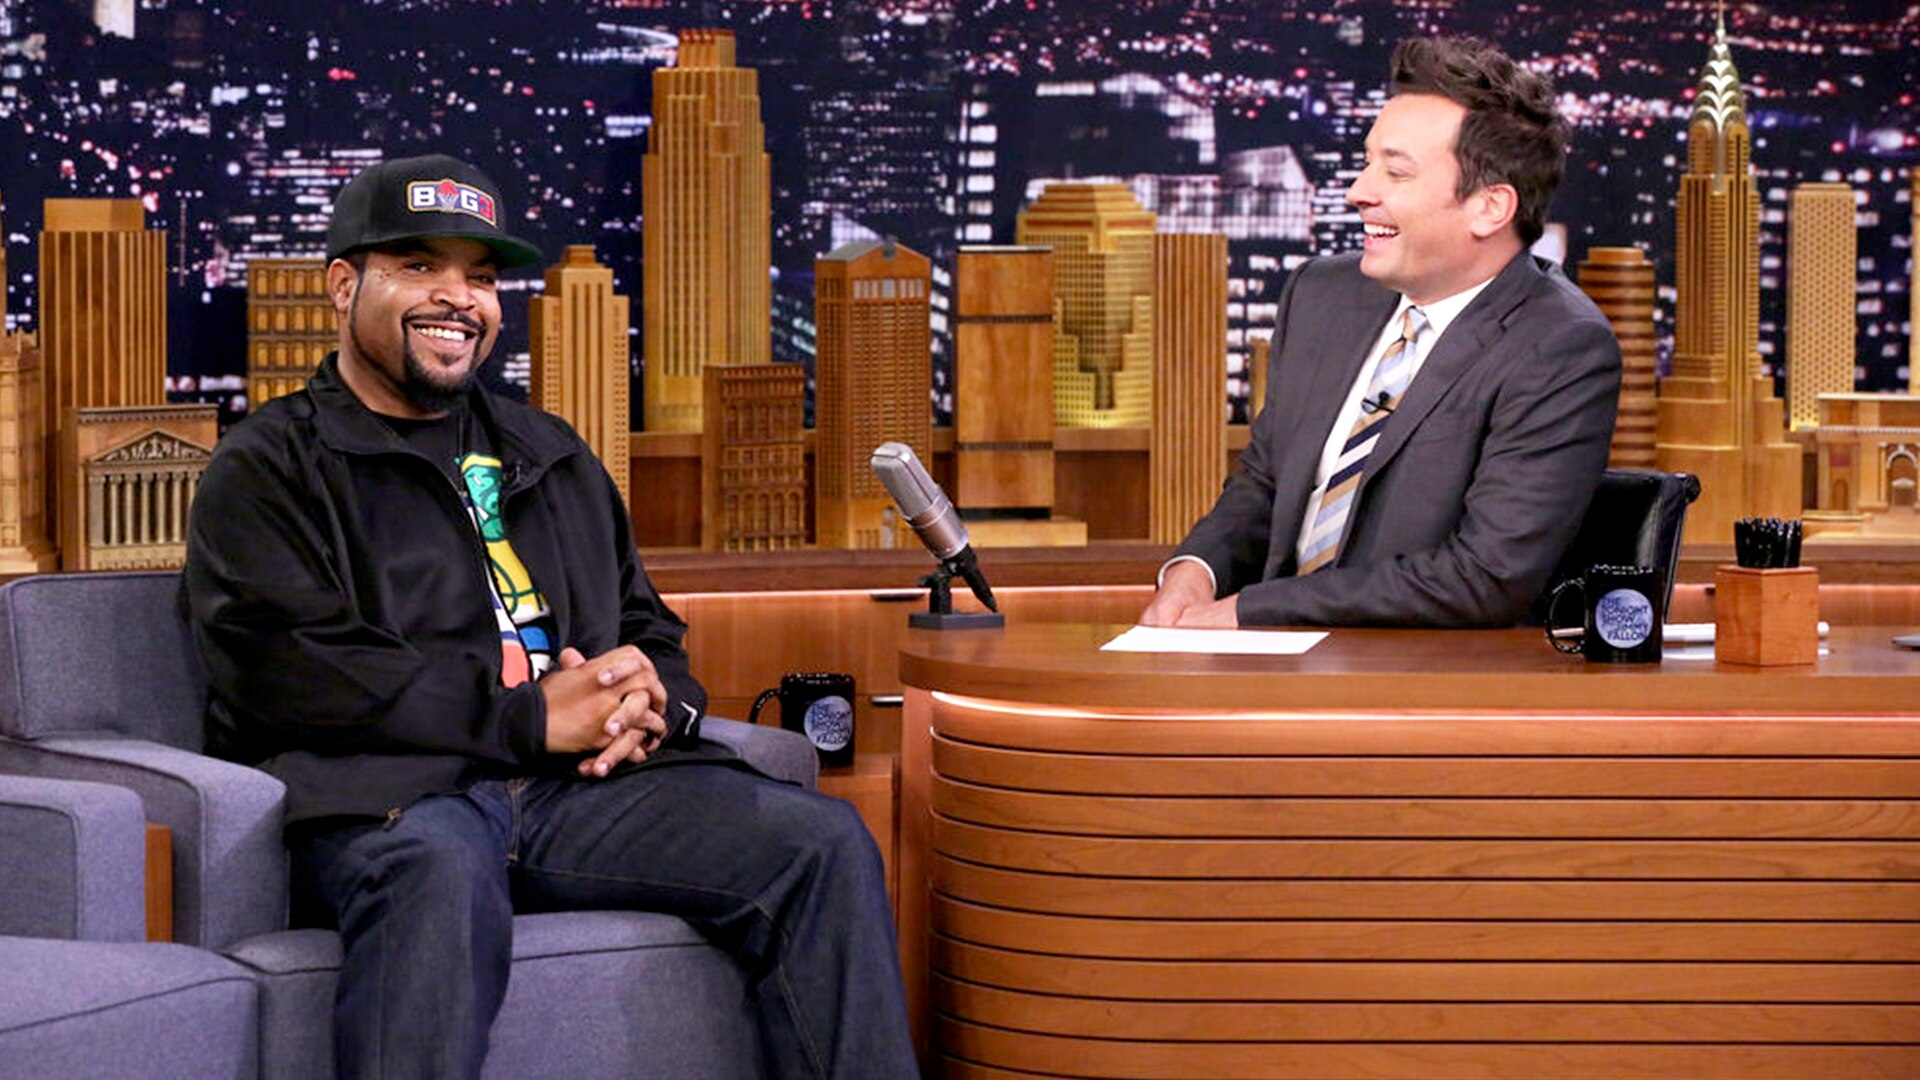 Watch The Tonight Show Starring Jimmy Fallon Episode: Ice Cube, Dale ...